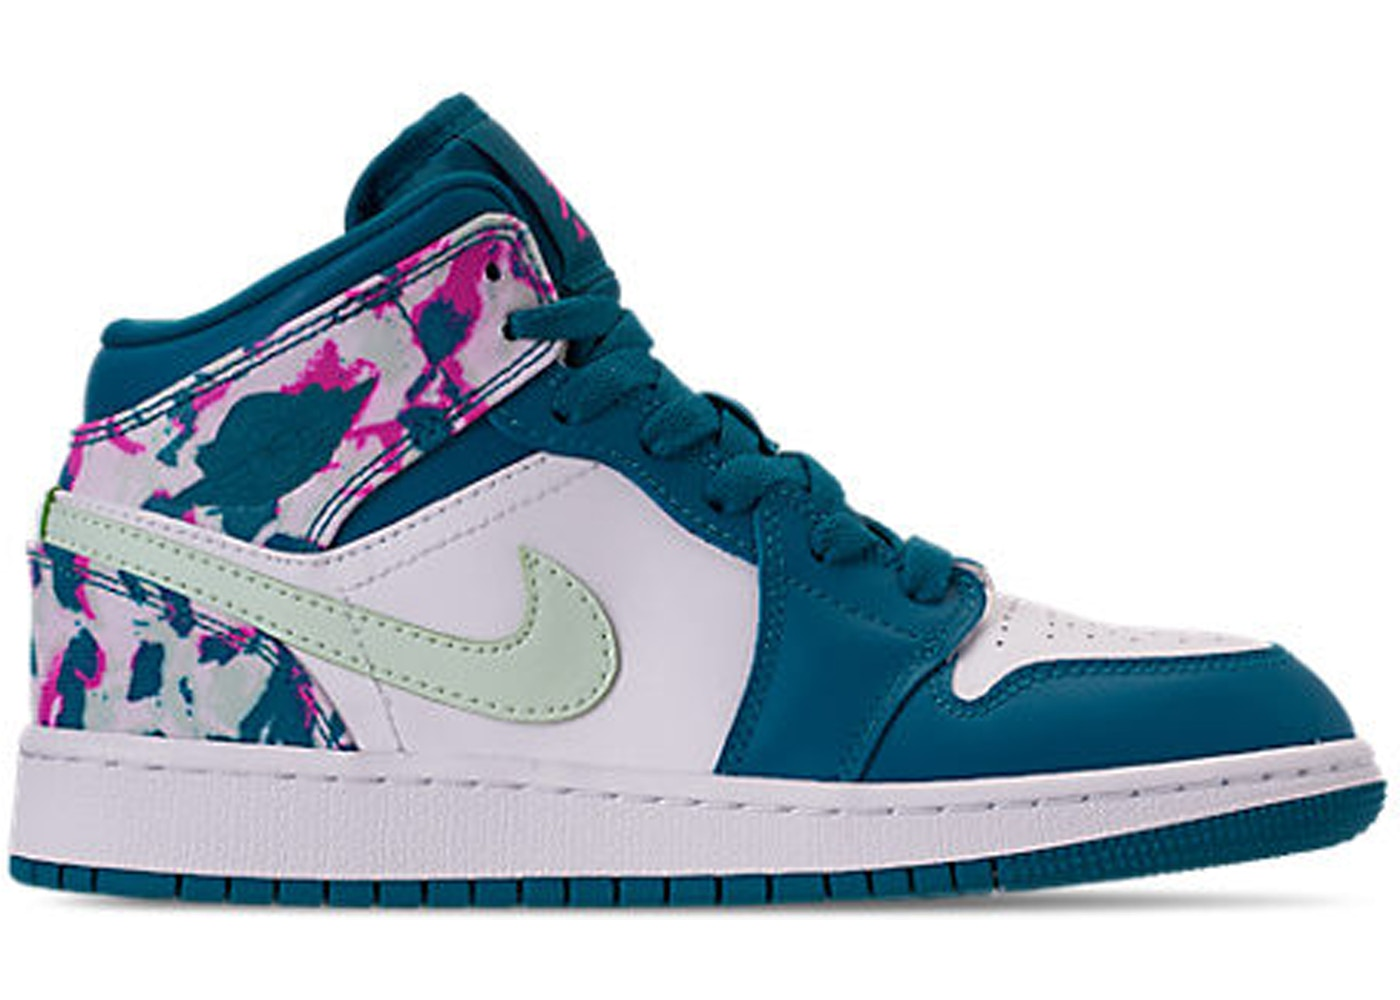 detailed look 0b335 9a123 Jordan 1 Mid Paint Stroke (GS)